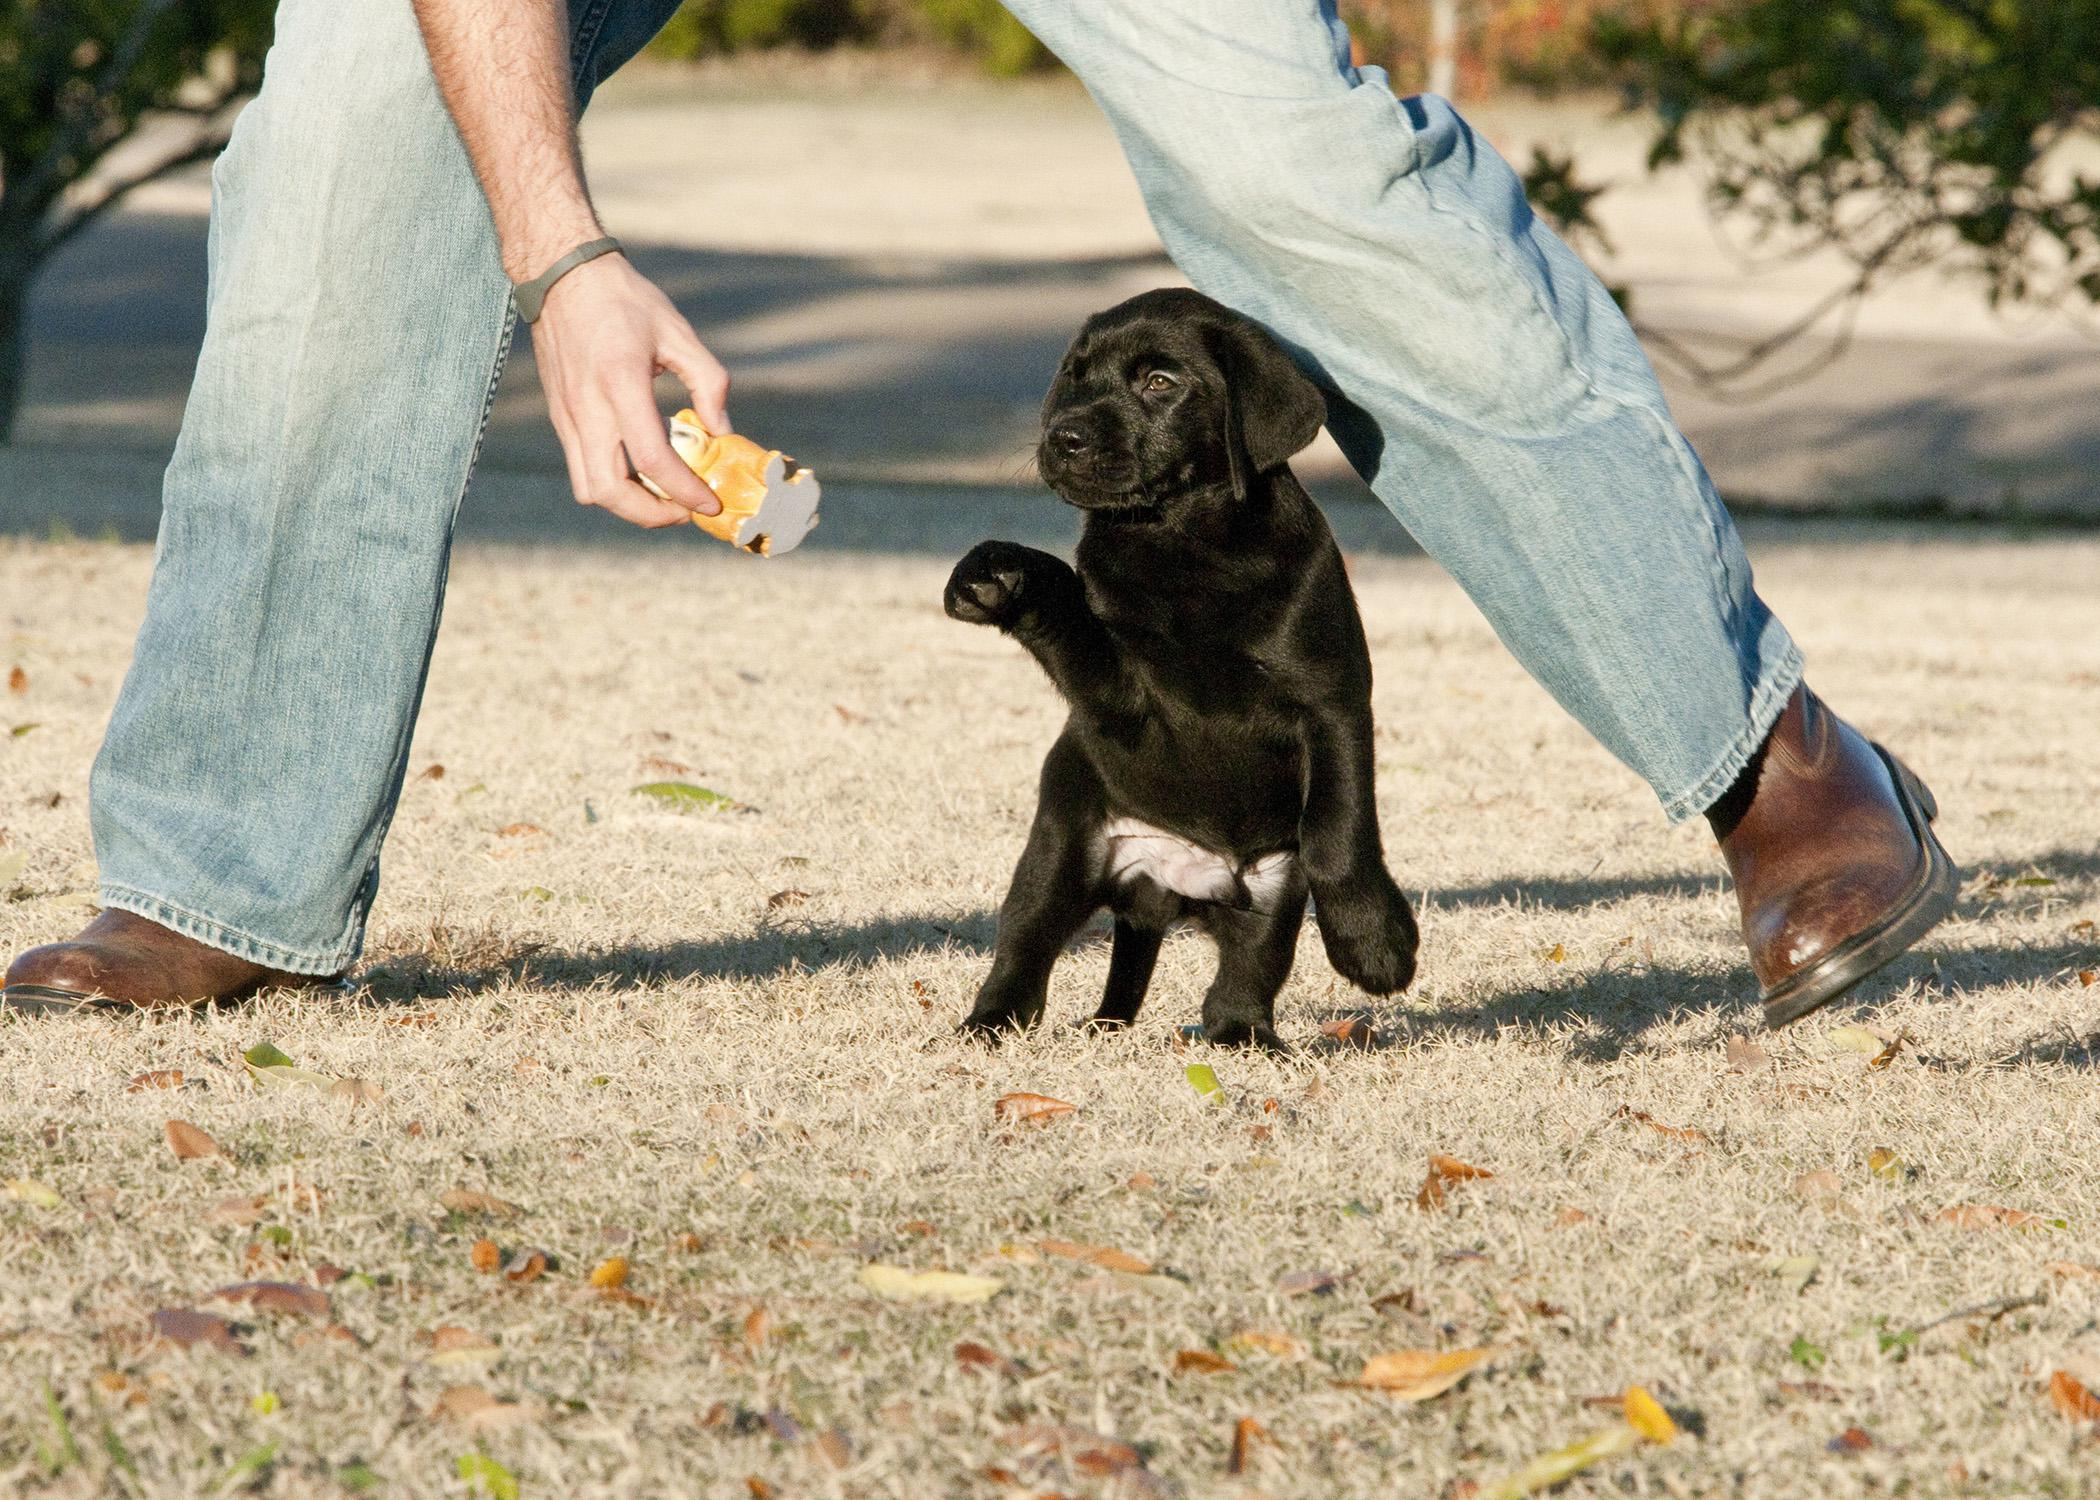 New puppy parents can modify behavior by incorporating some training into daily interactions. A fun game of fetch teaches puppies to return items of value. (Photo by MSU College of Veterinary Medicine/Tom Thompson)